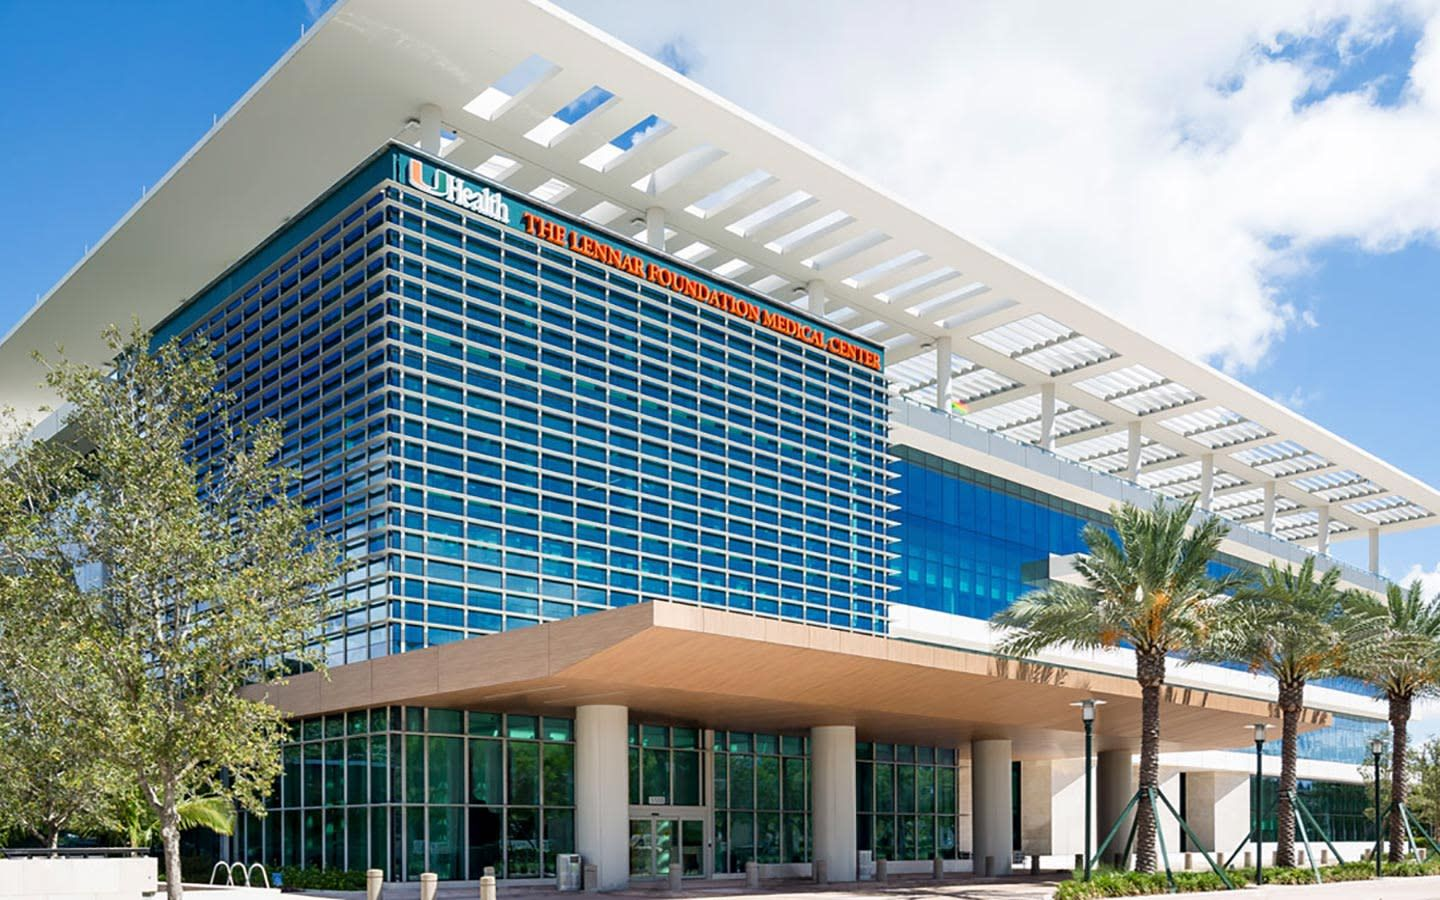 University of Miami Health Systems